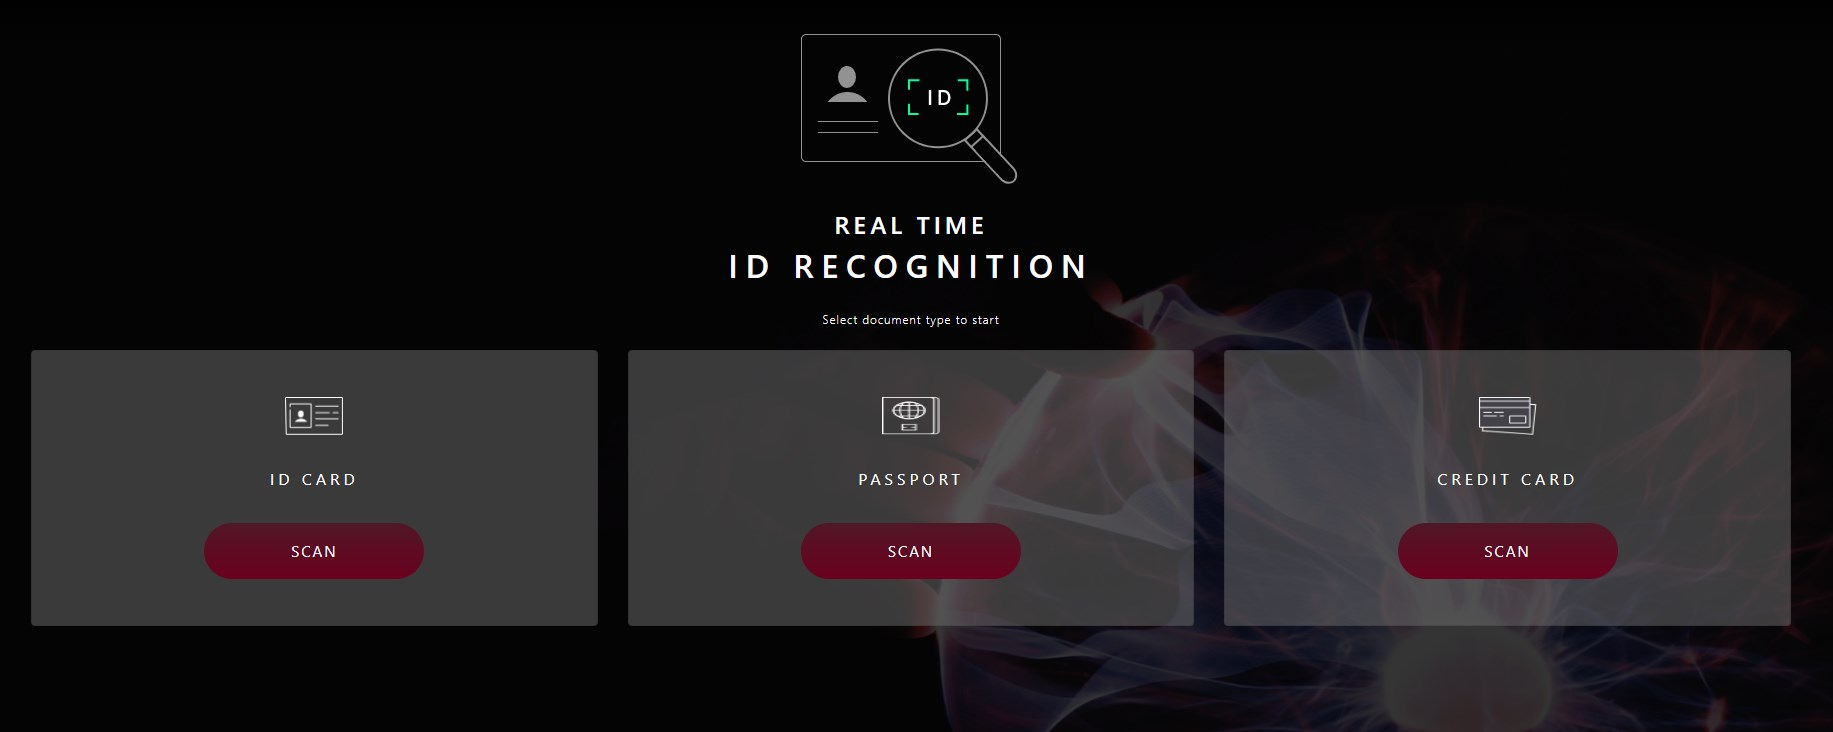 A-Eye Recognition by EAB Systems